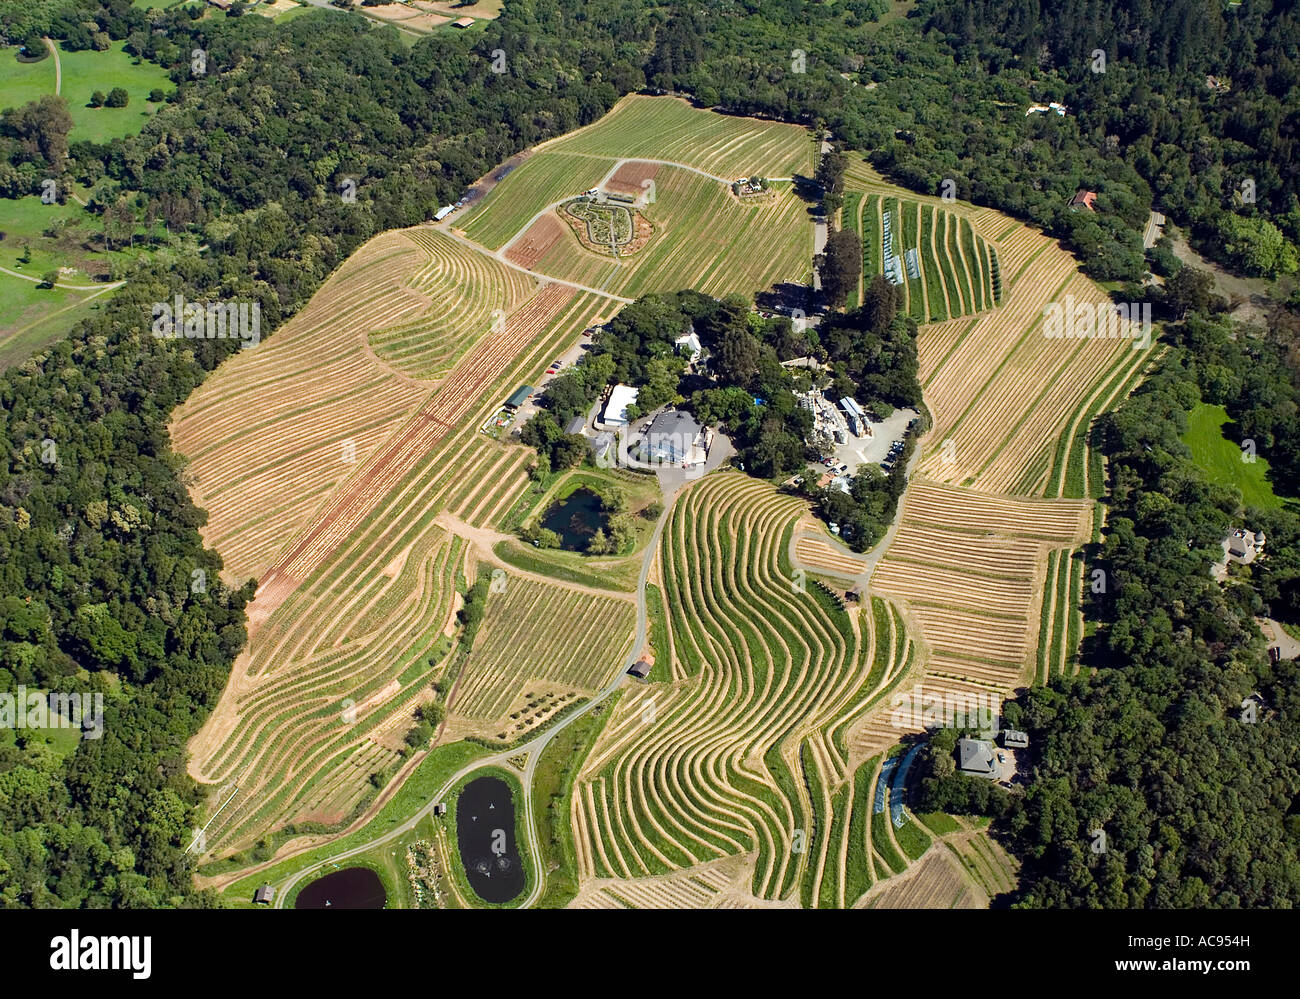 aerial view above Benziger Winery and vineyards in Glenn Ellen CA Sonoma county - Stock Image